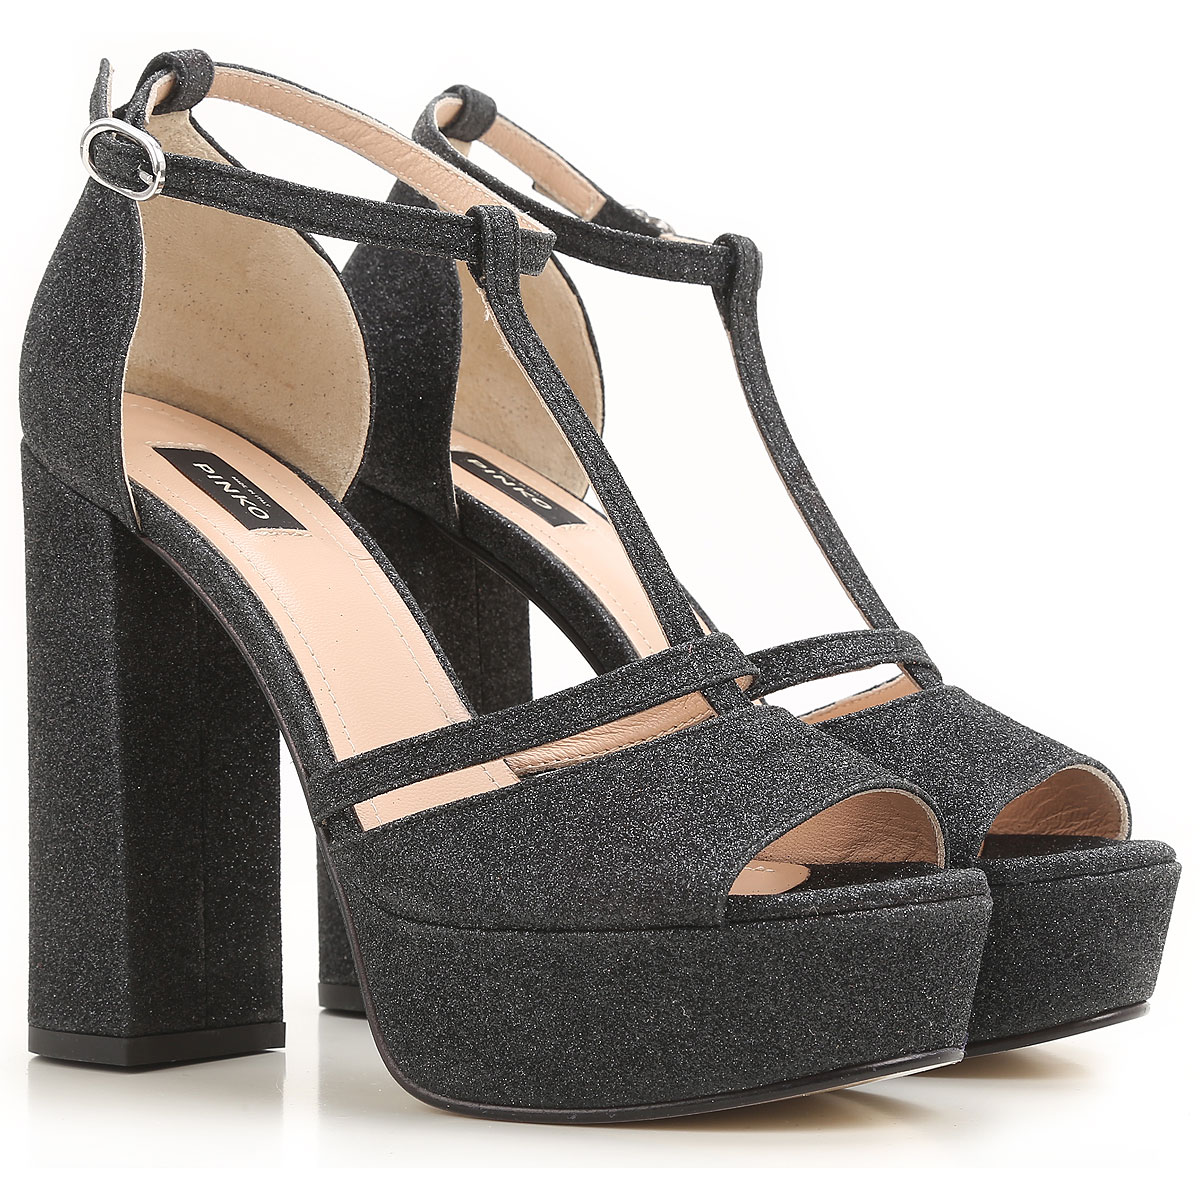 Pinko Sandals for Women On Sale in Outlet glittered black SE - GOOFASH